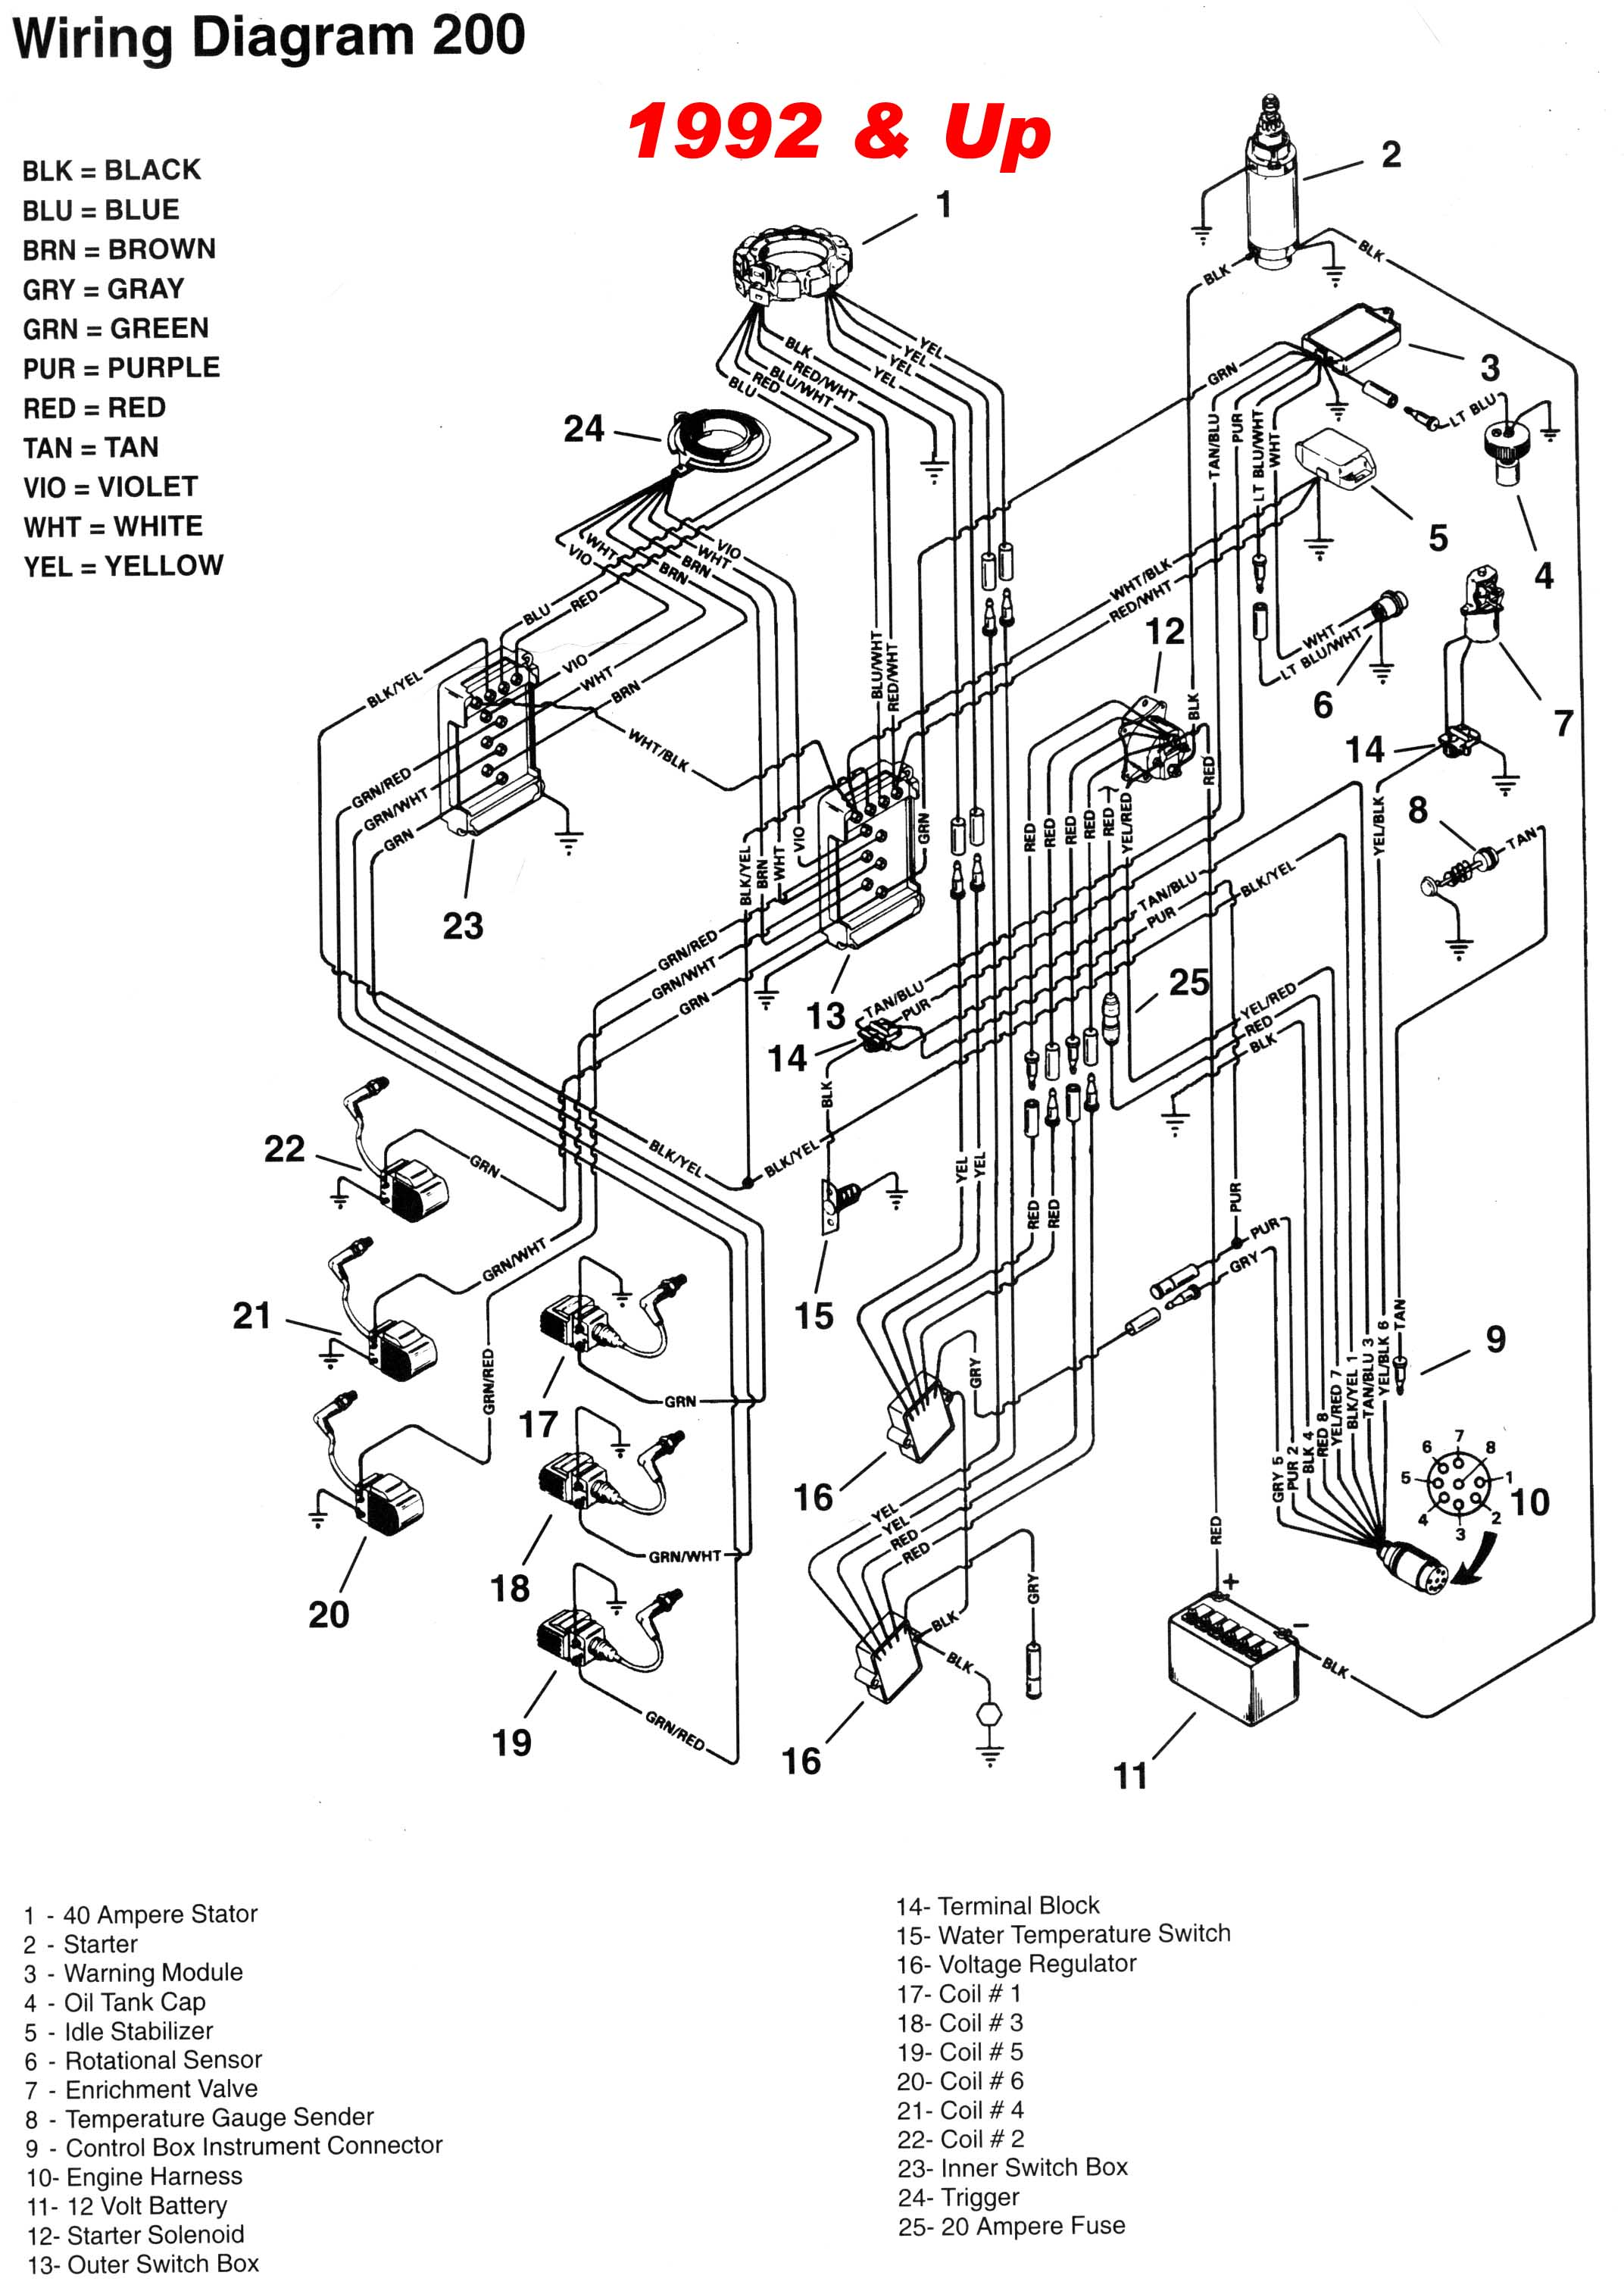 mercury 225 efi wiring diagram wiring diagram expertsmercury efi wiring diagram wiring diagram gp mercury 225 efi wiring diagram mercury 225 efi wiring diagram